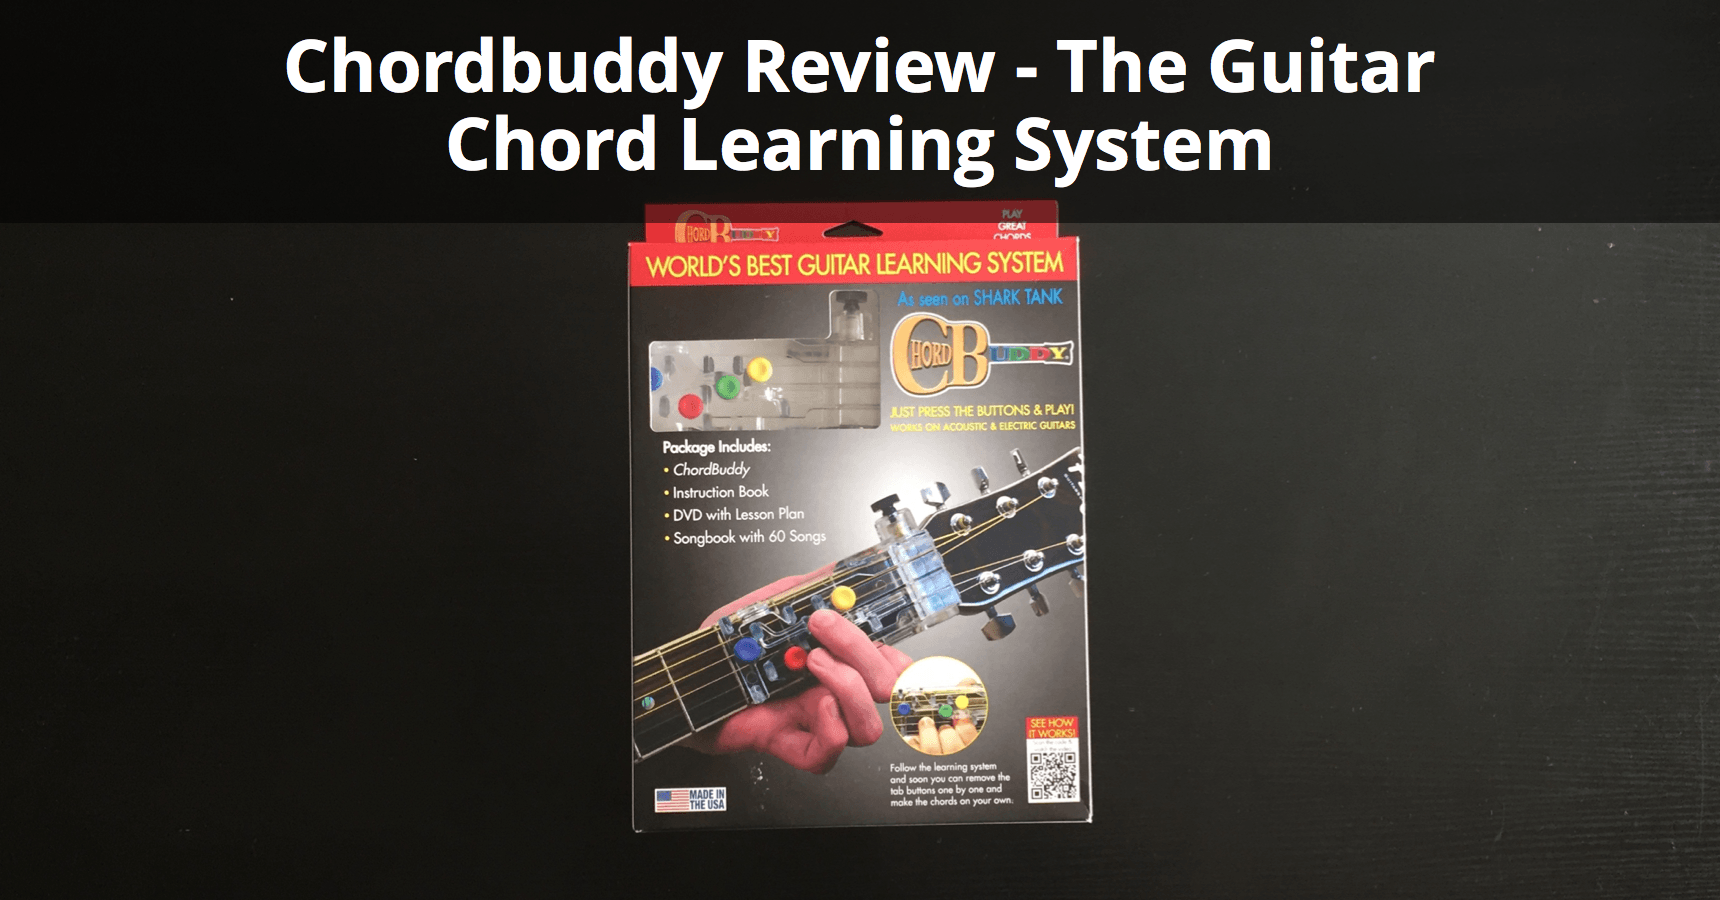 Chordbuddy Review The Guitar Chord Learning System Musician Tuts